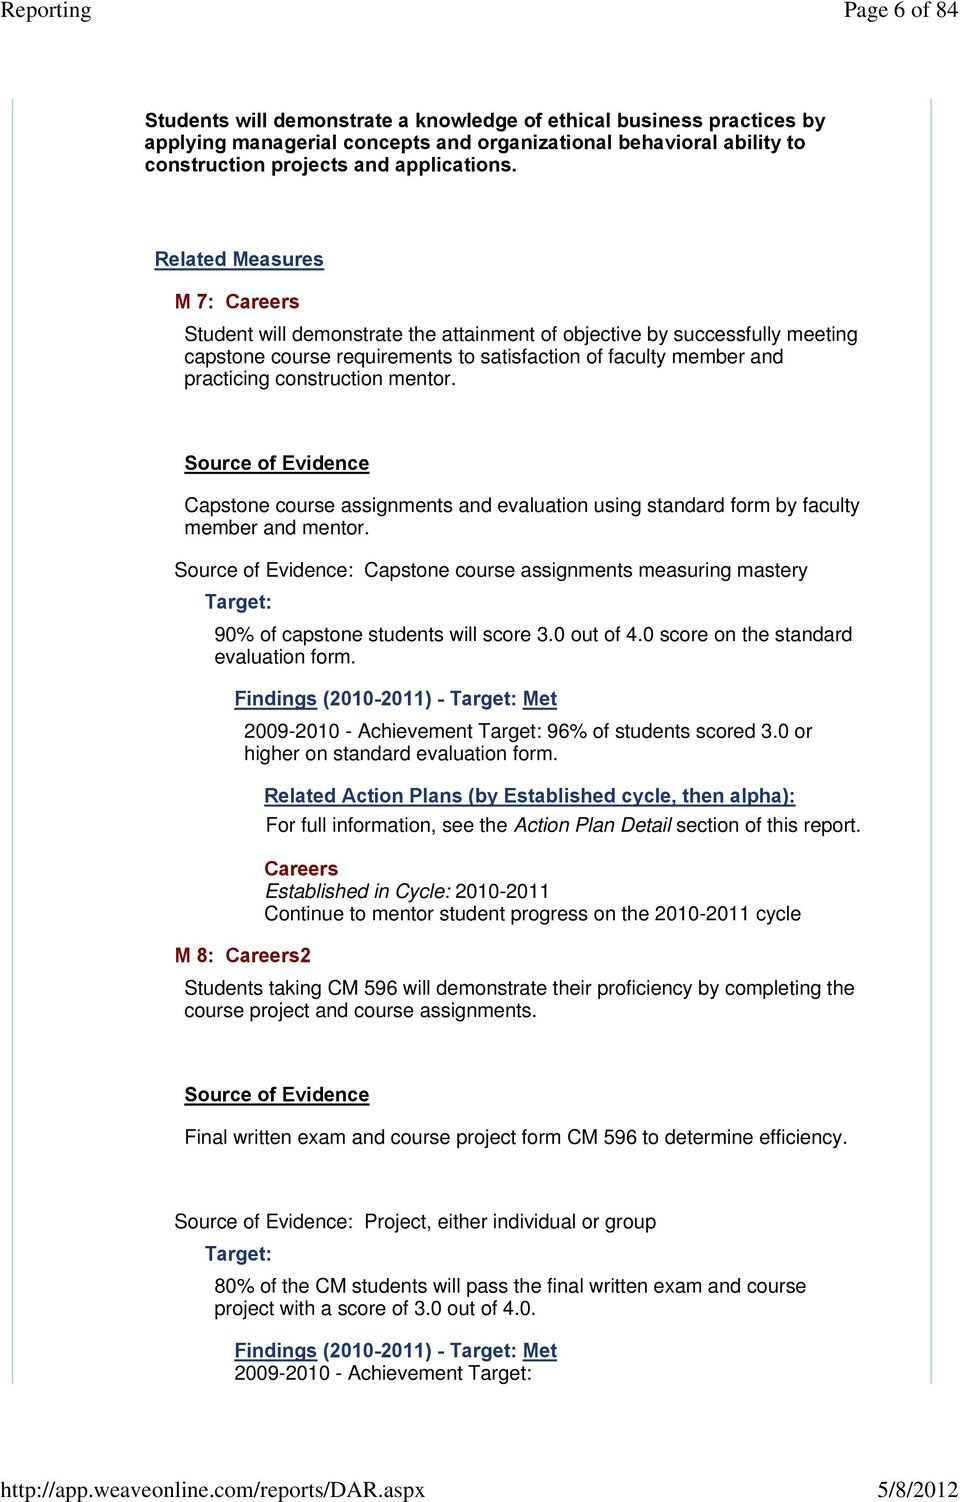 Capstone course assignments and evaluation using standard form by faculty member and mentor. : Capstone course assignments measuring mastery 90% of capstone students will score 3.0 out of 4.